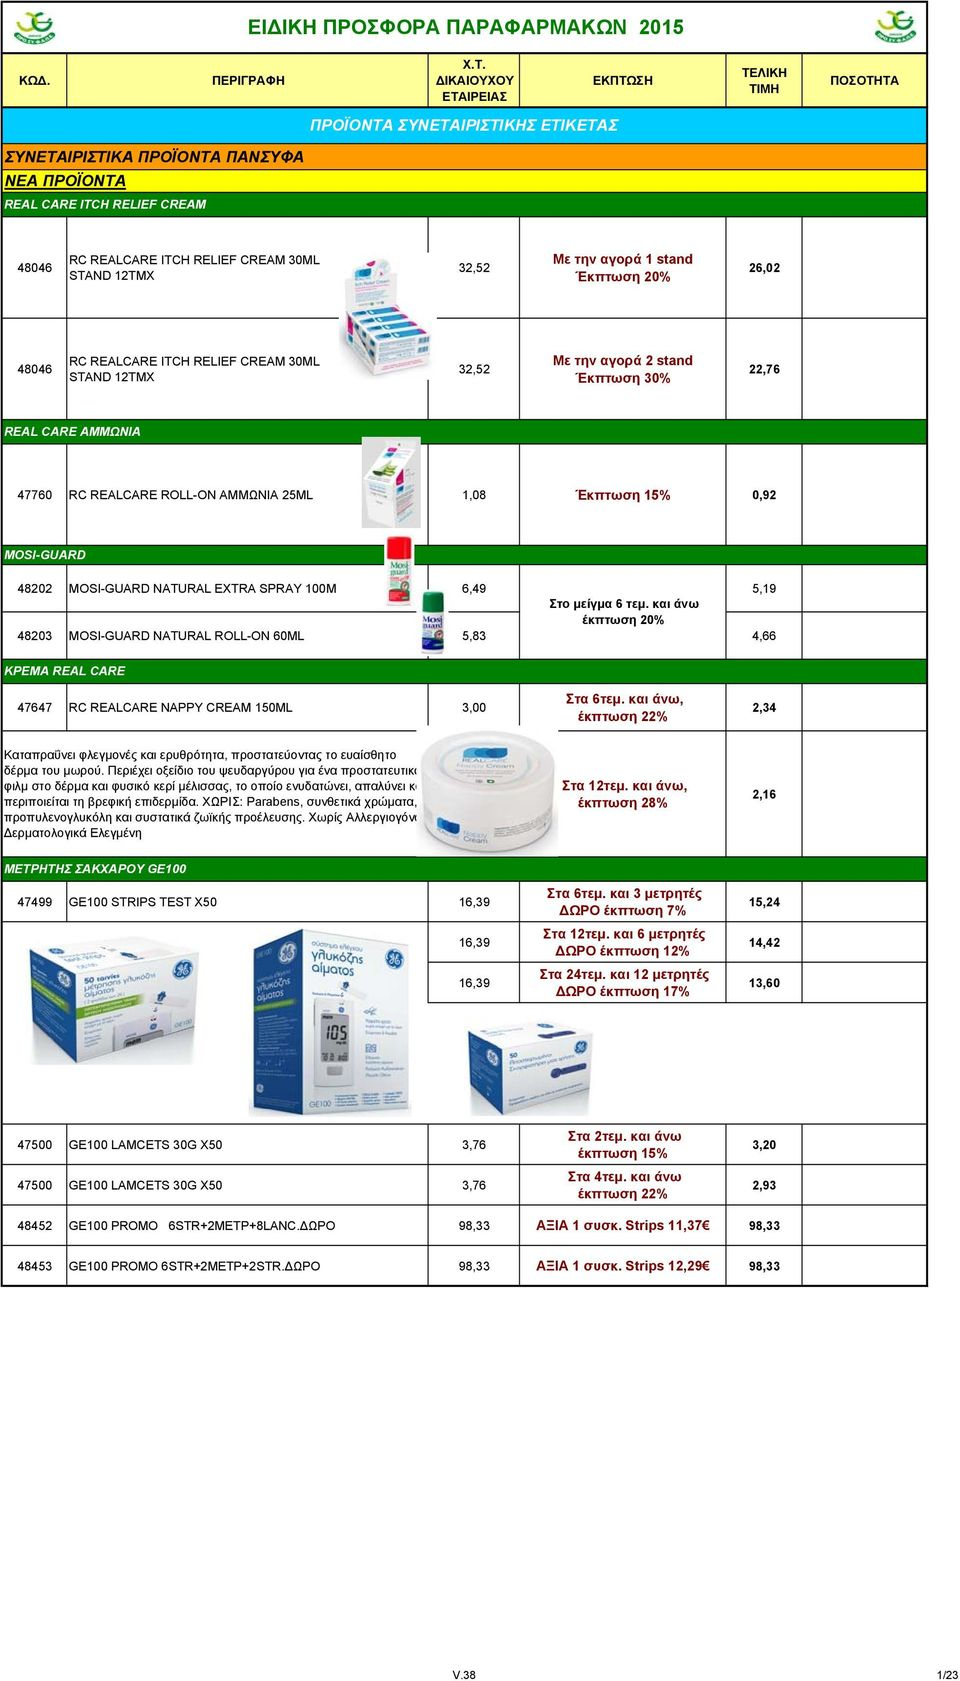 26,02 48046 RC REALCARE ITCH RELIEF CREAM 30ML STAND 12ΤΜΧ 32,52 Με την αγορά 2 stand Έκπτωση 30% 22,76 REAL CARE ΑΜΜΩΝΙΑ 47760 RC REALCARE ROLL-ON ΑΜΜΩΝΙΑ 25ML 1,08 Έκπτωση 15% 0,92 MOSI-GUARD 48202